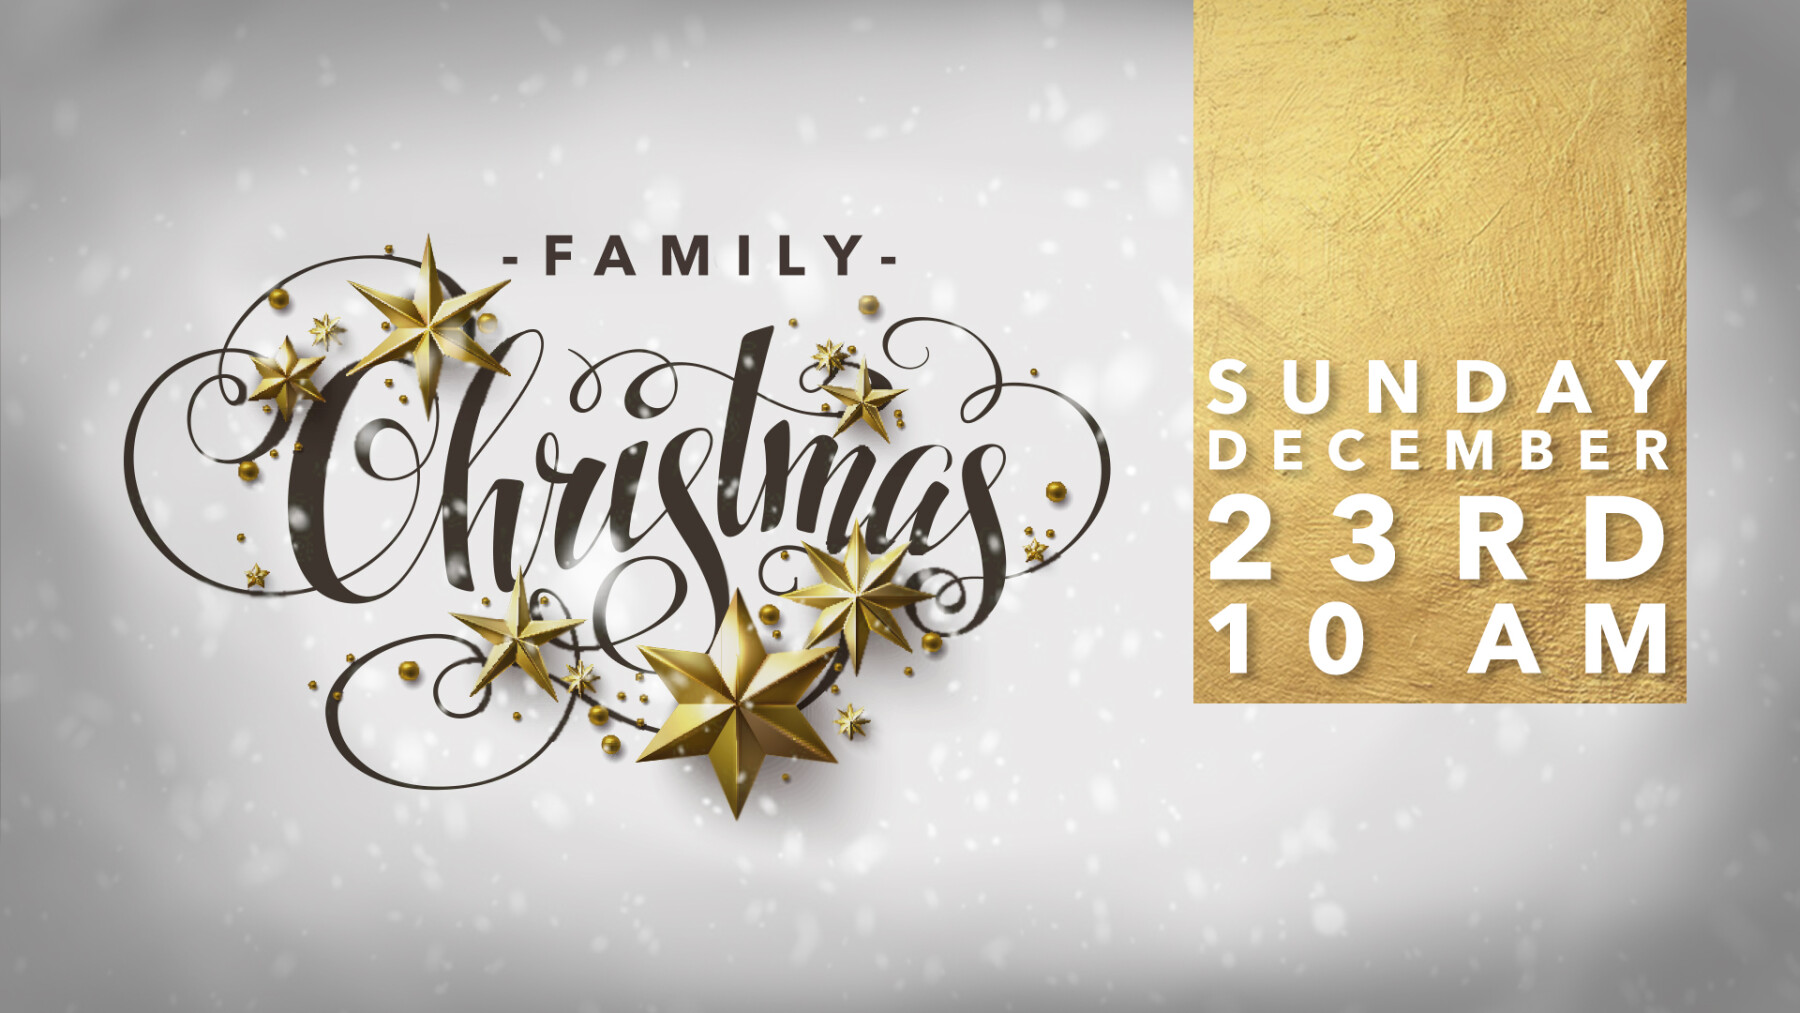 Special Christmas Family Service